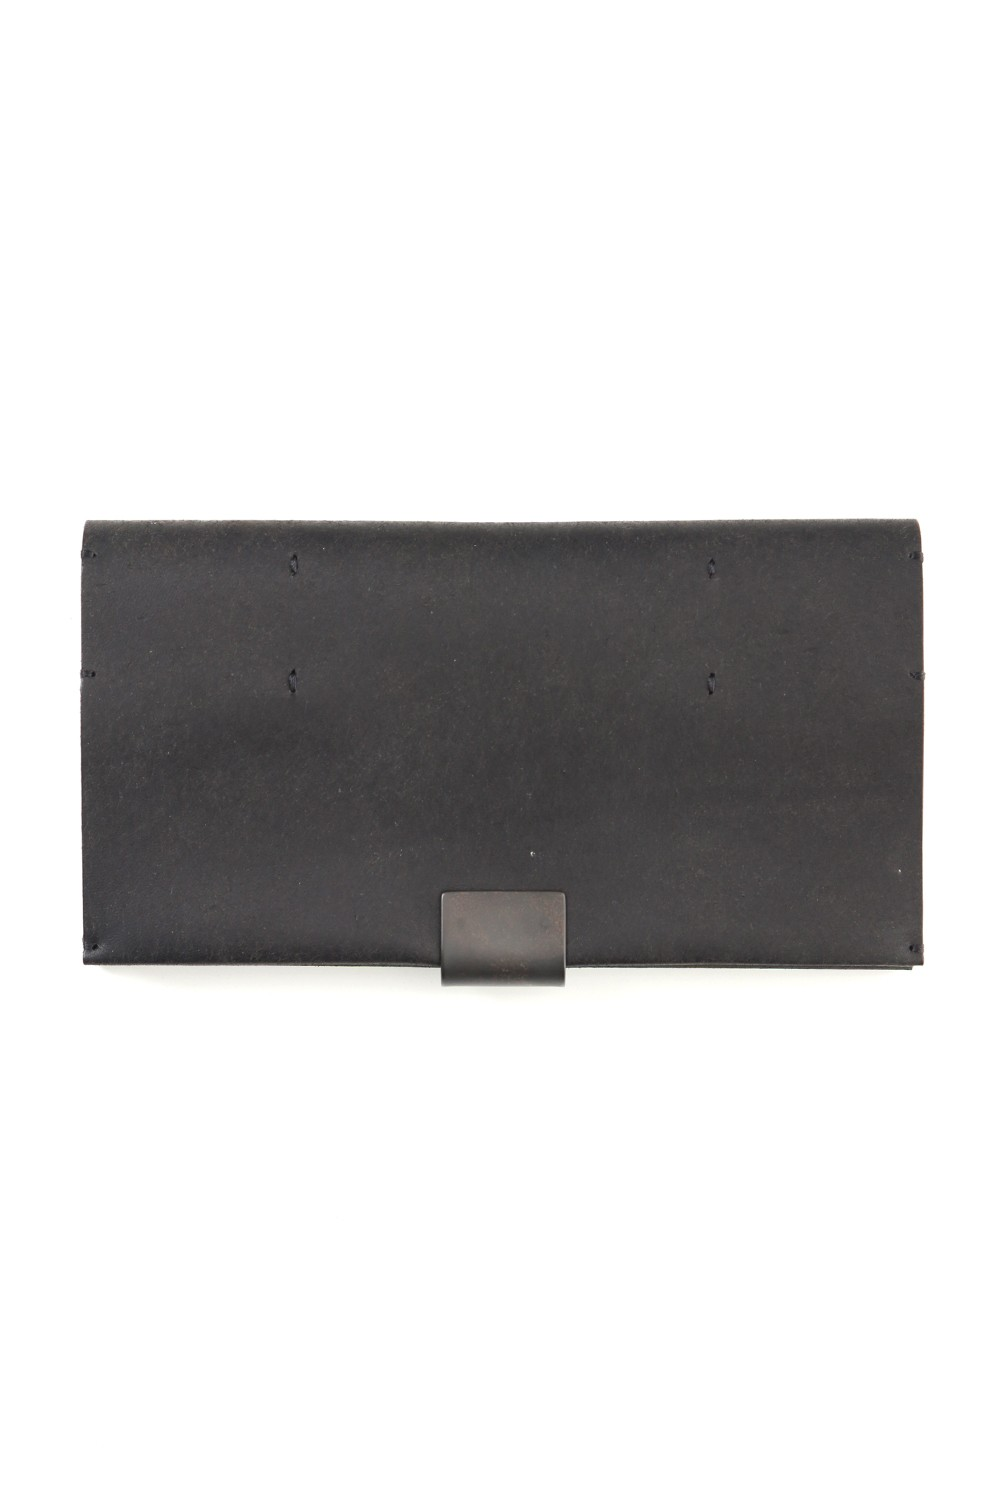 Cow Leather Long Wallet A - Havana Leather